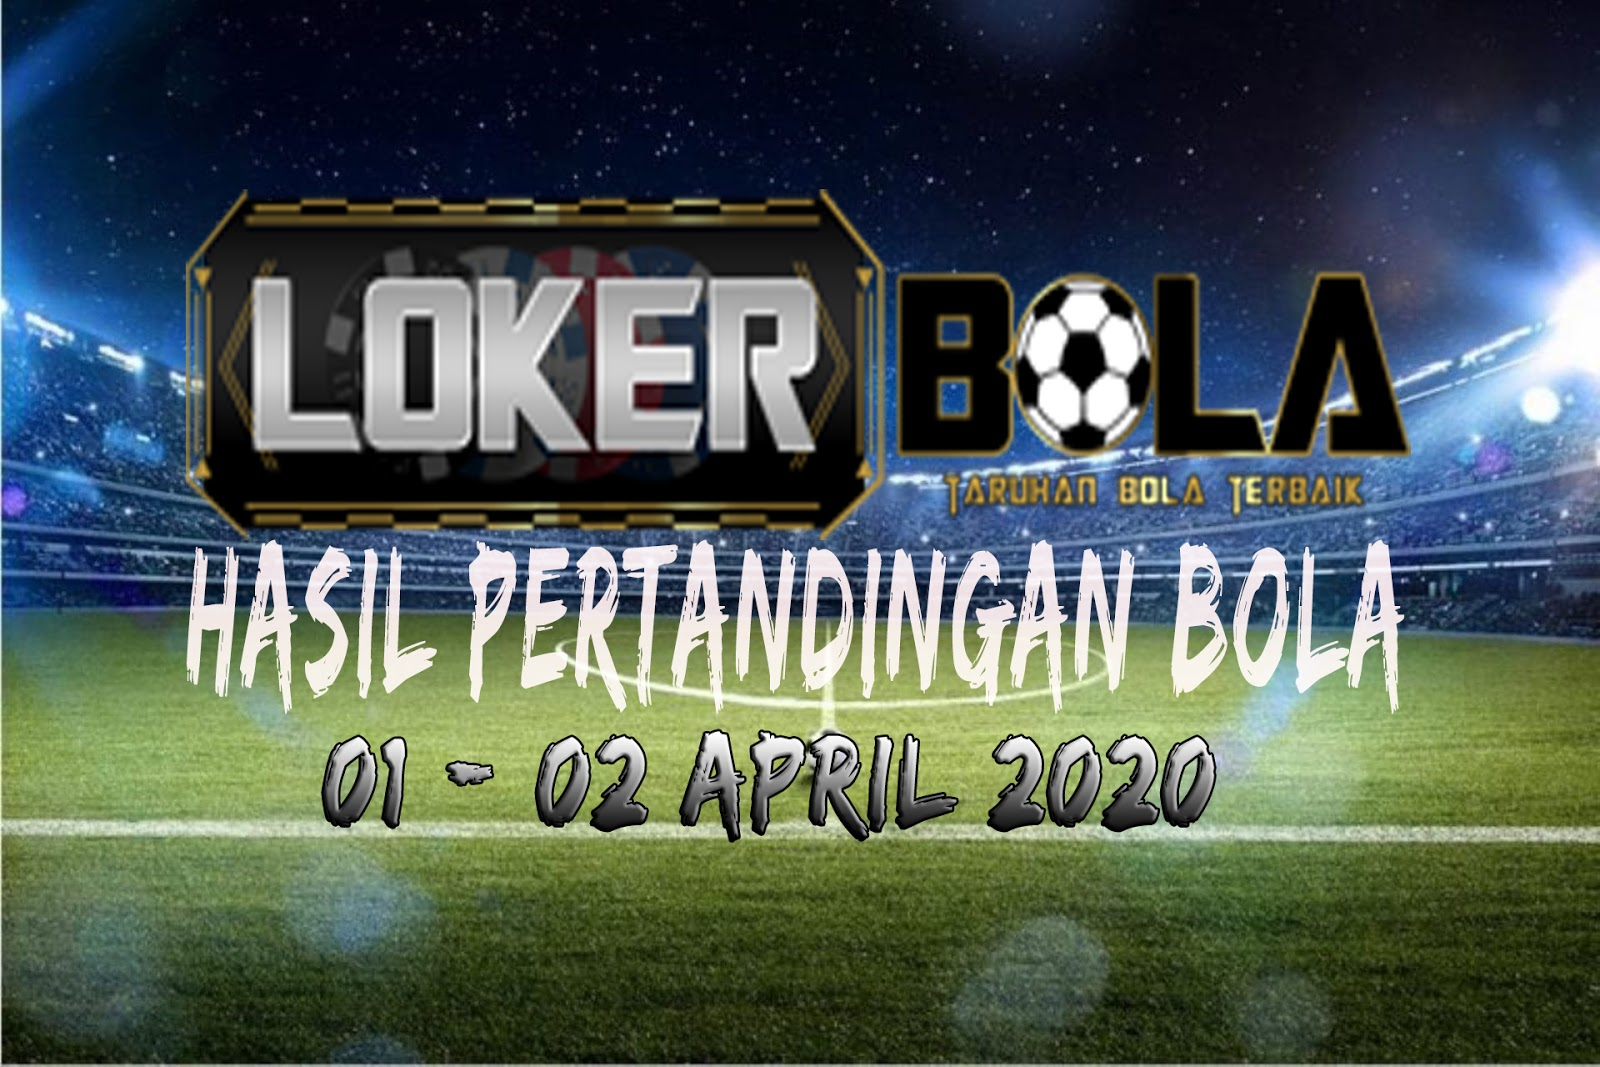 HASIL PERTANDINGAN BOLA 01 – 02 APRIL 2020